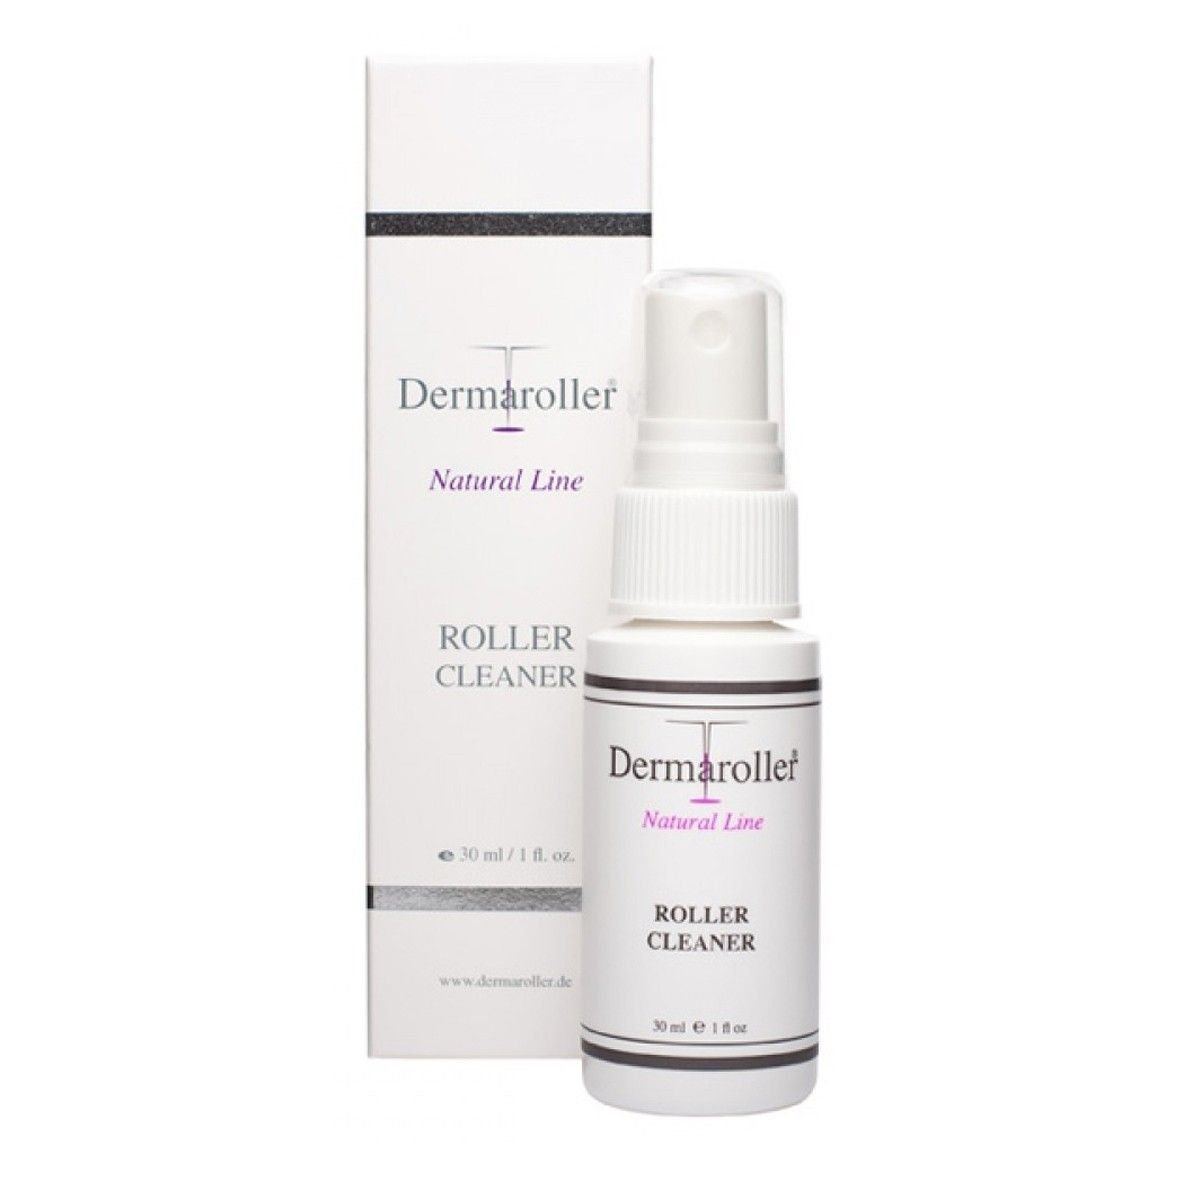 Afbeelding van Dermaroller Roller Cleaner Natural Line Reiniging Beauty